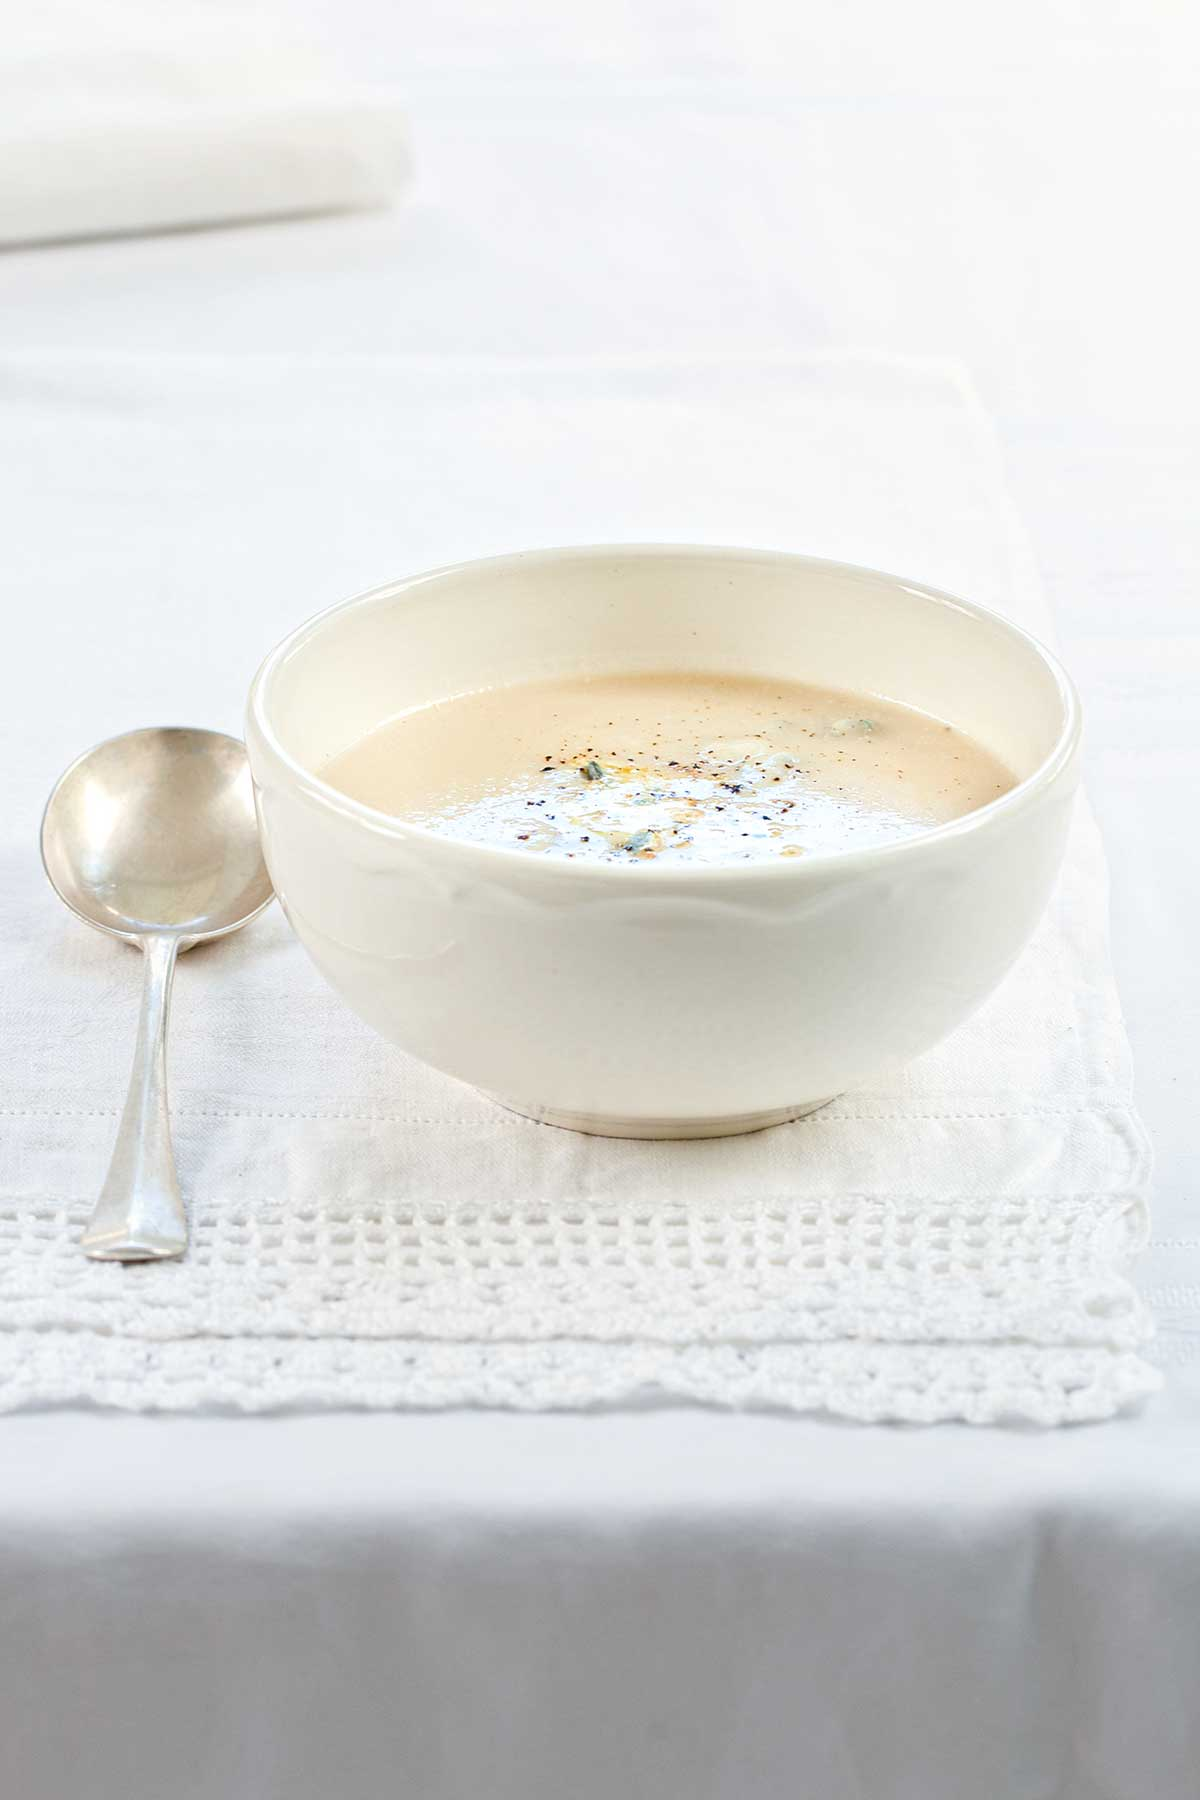 A white bowl of cauliflower soup on a white linen cloth with a spoon resting beside it.